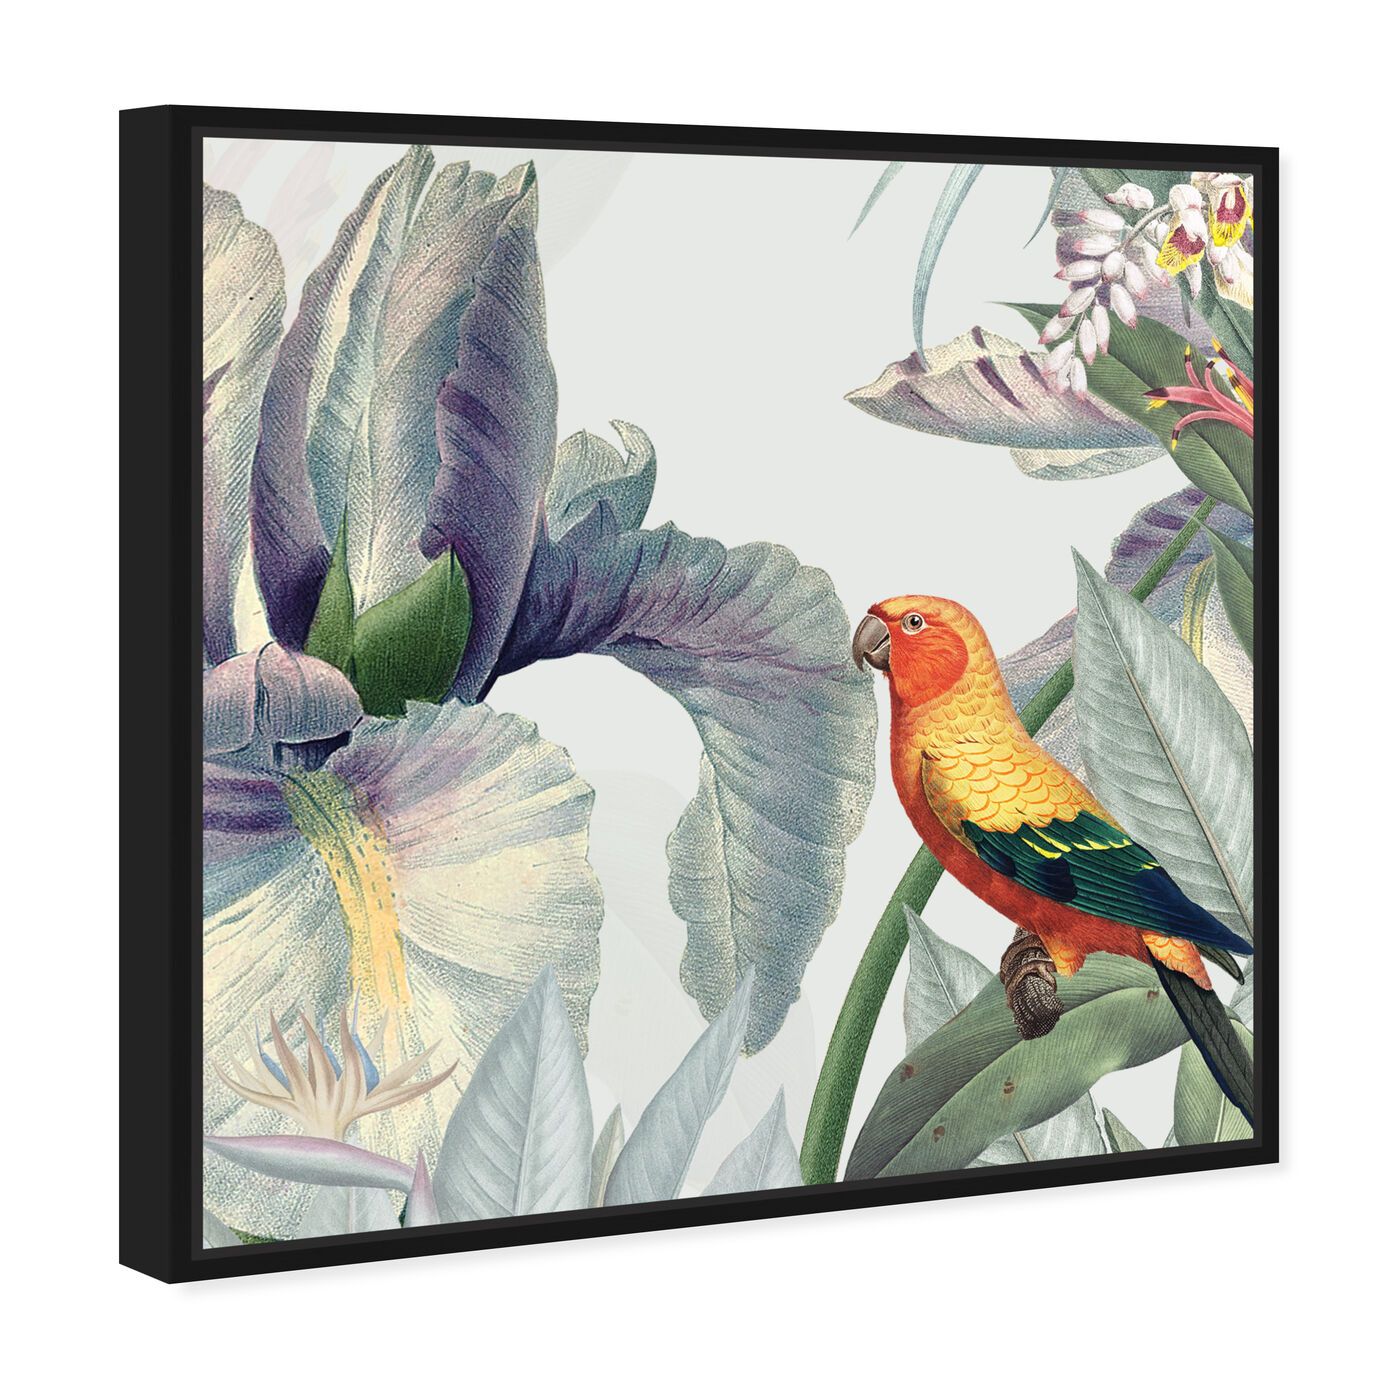 Angled view of Natura featuring animals and birds art.